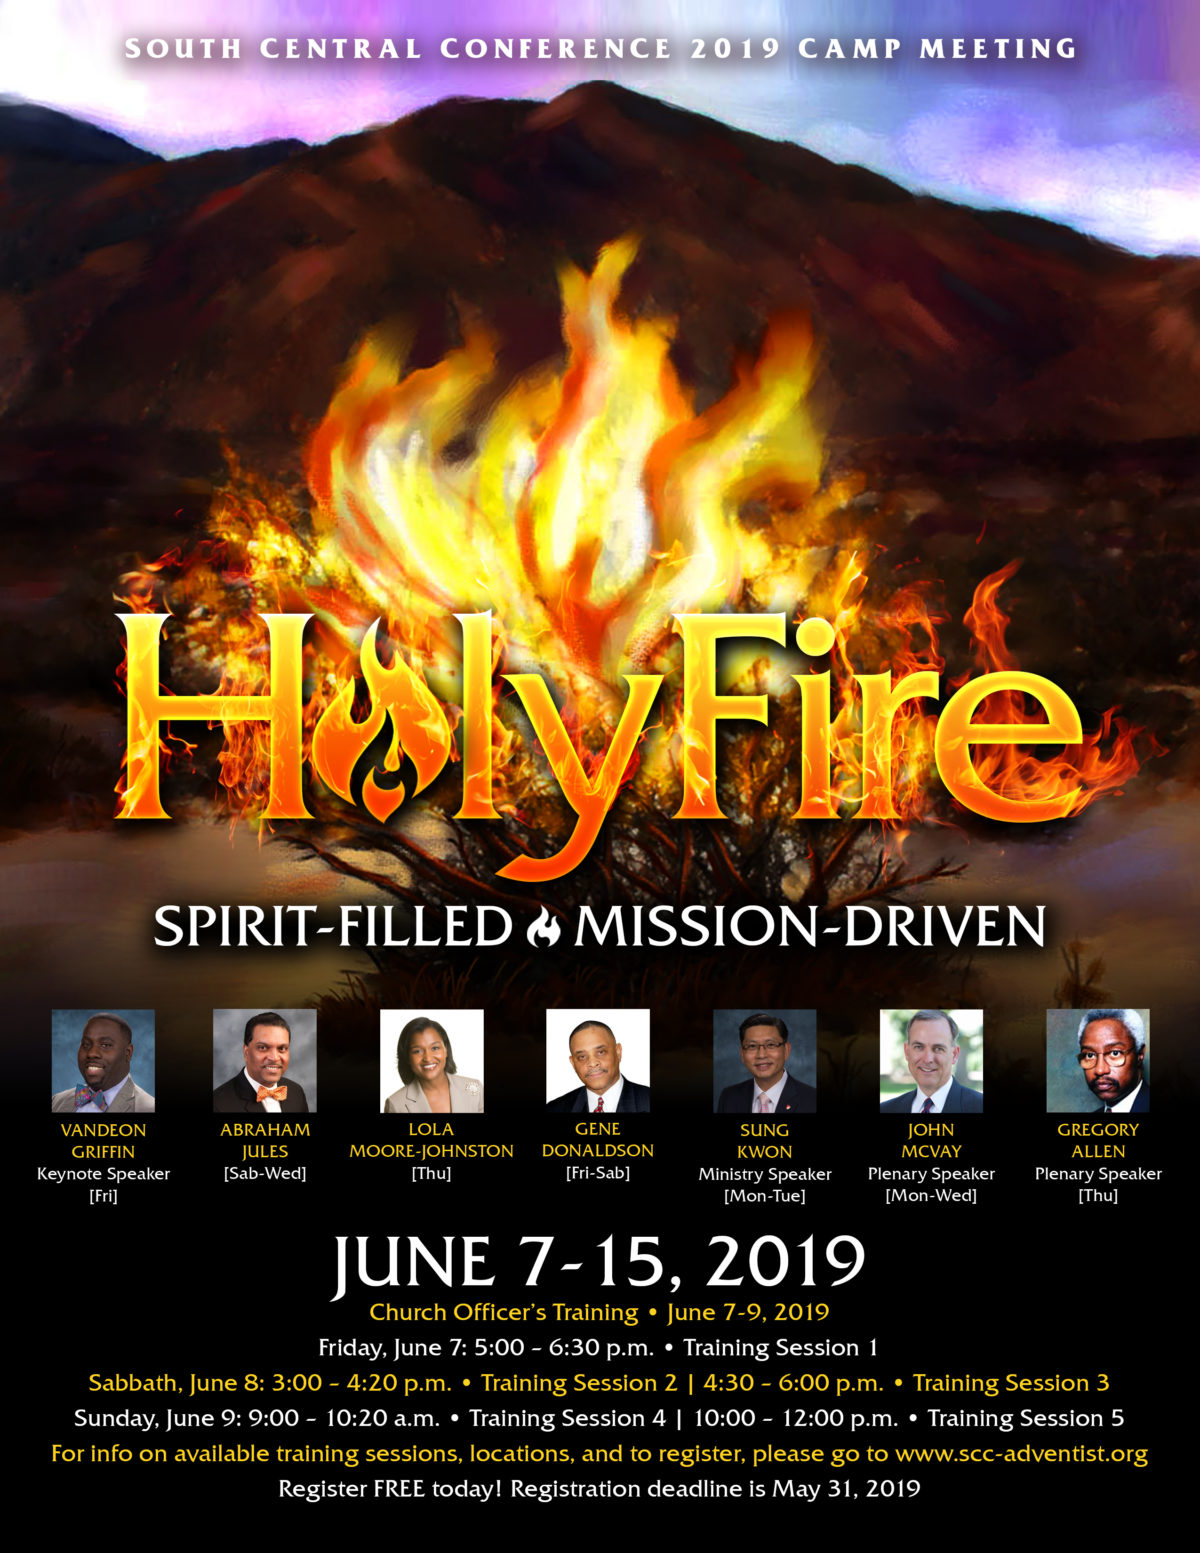 Holy-Fire-w-speakers-Flyer-1200x1553.jpg